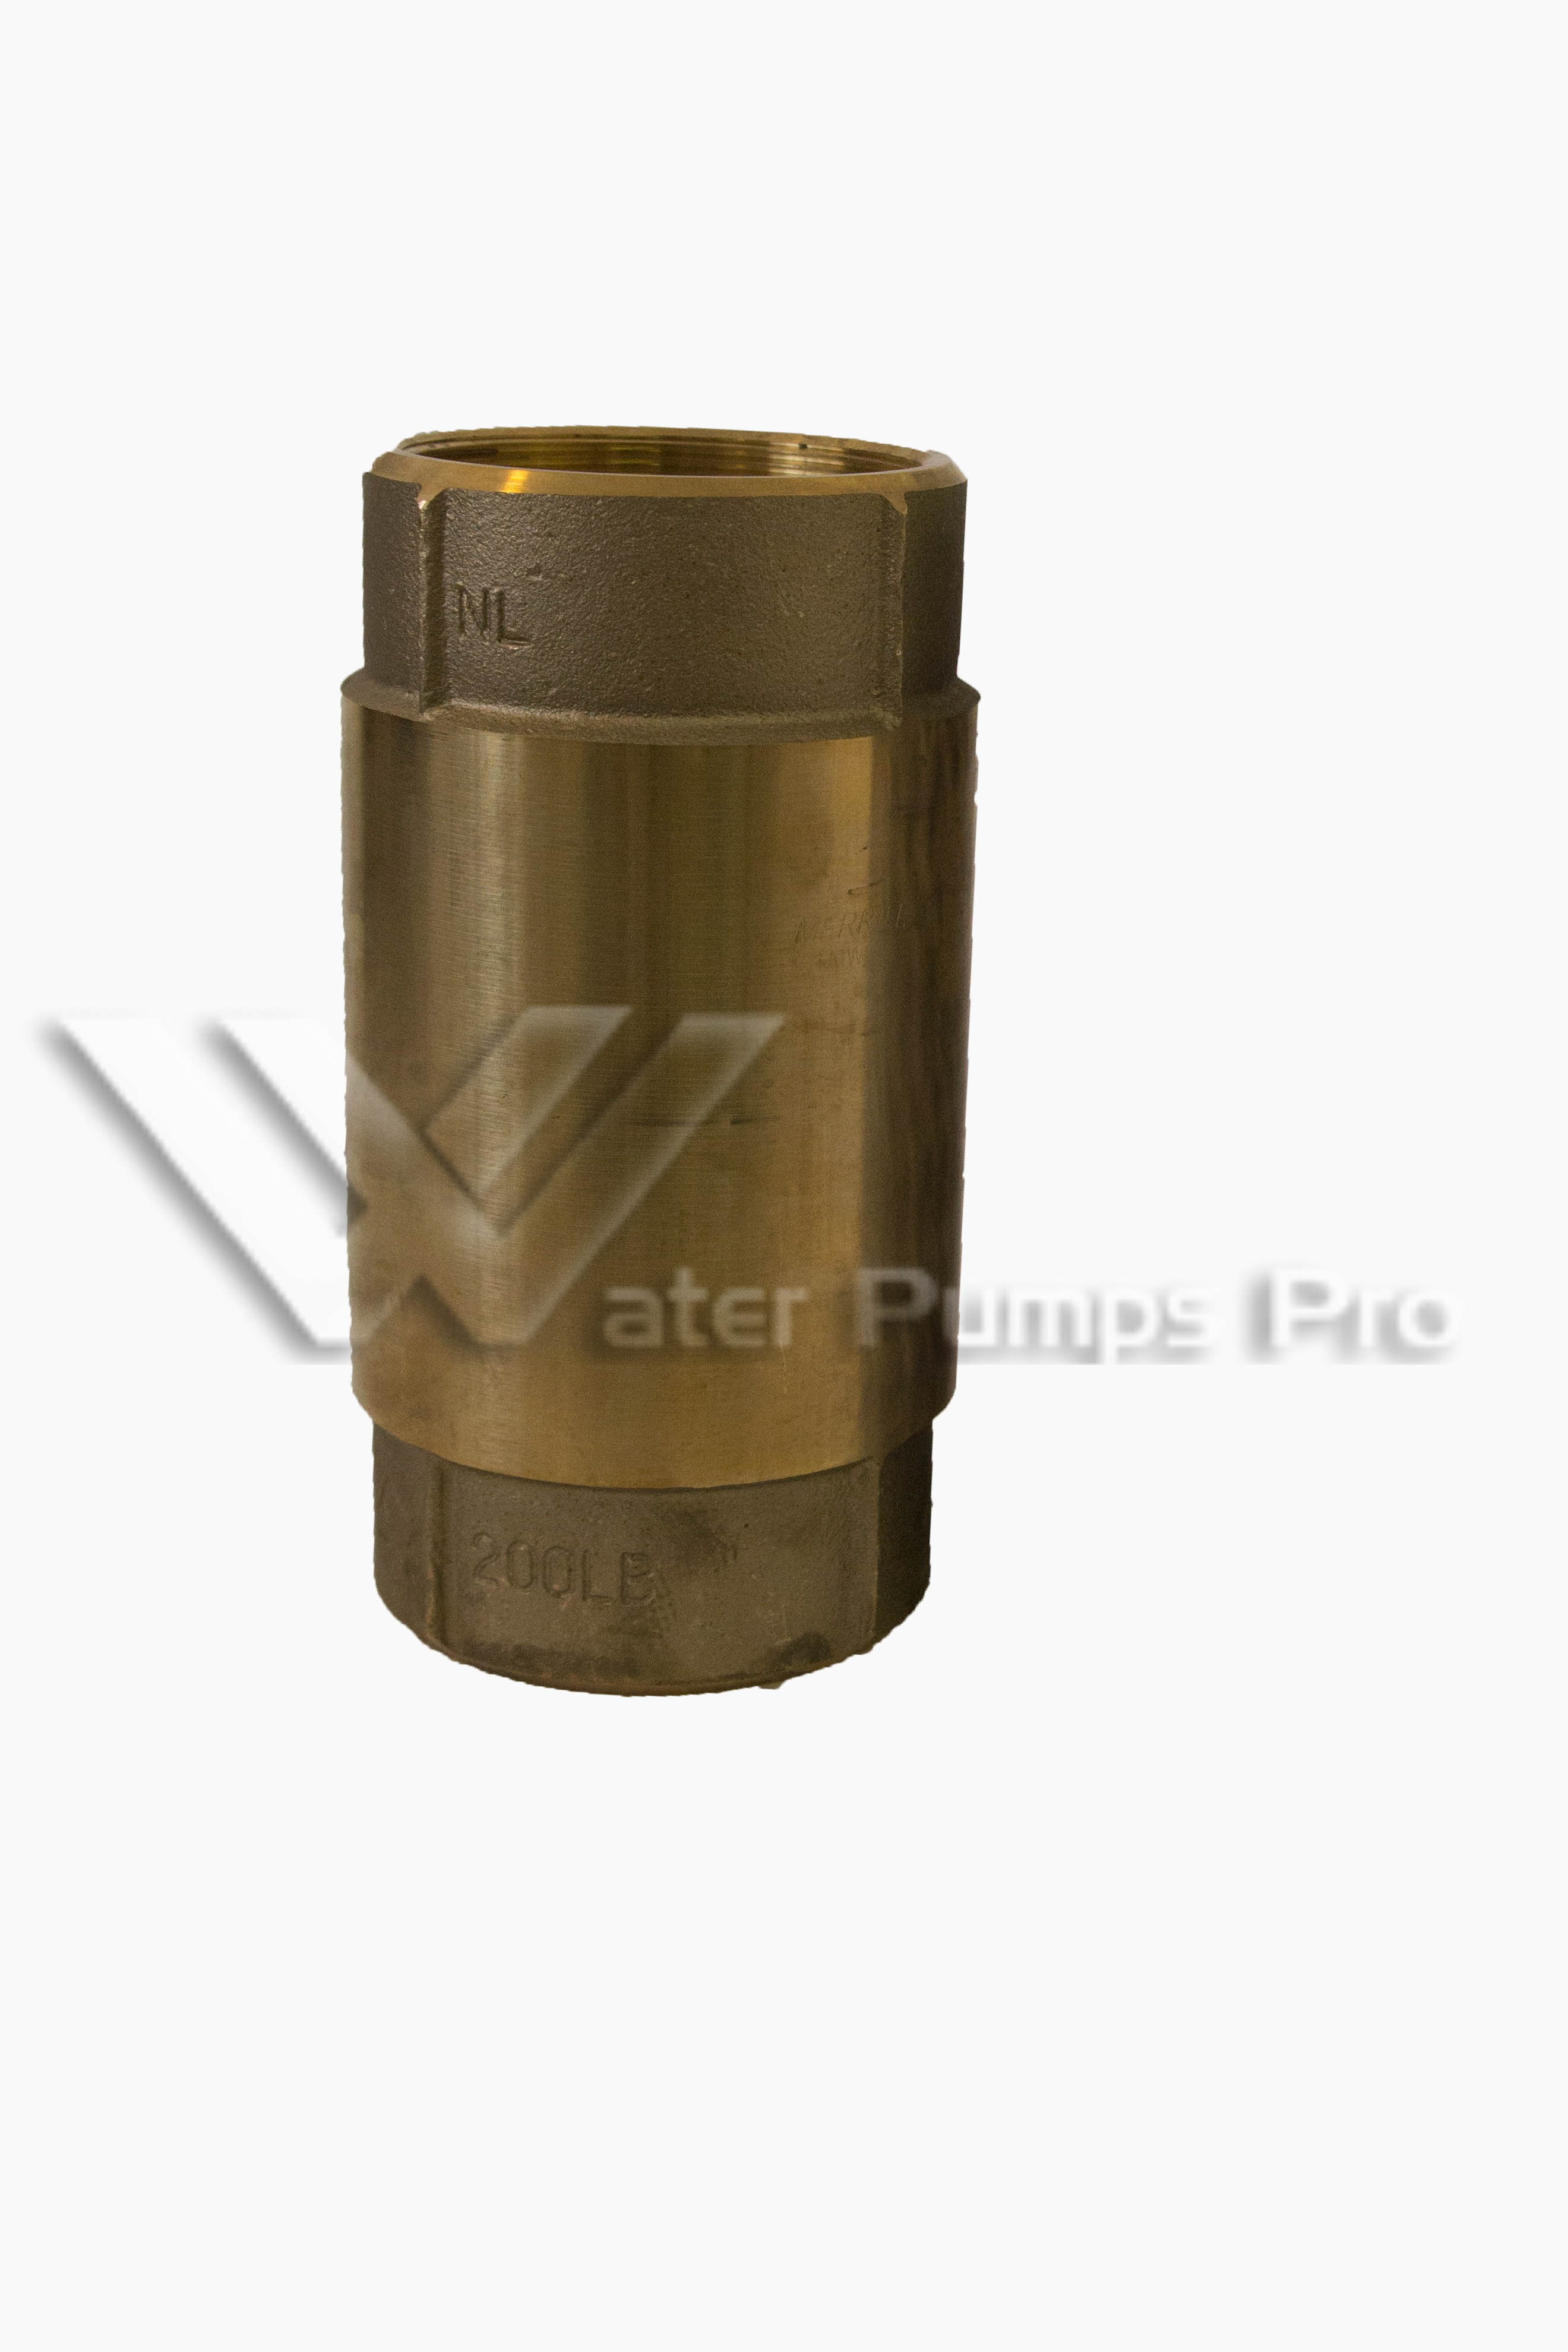 Merrill CVNL400 No Lead Brass Check Valve